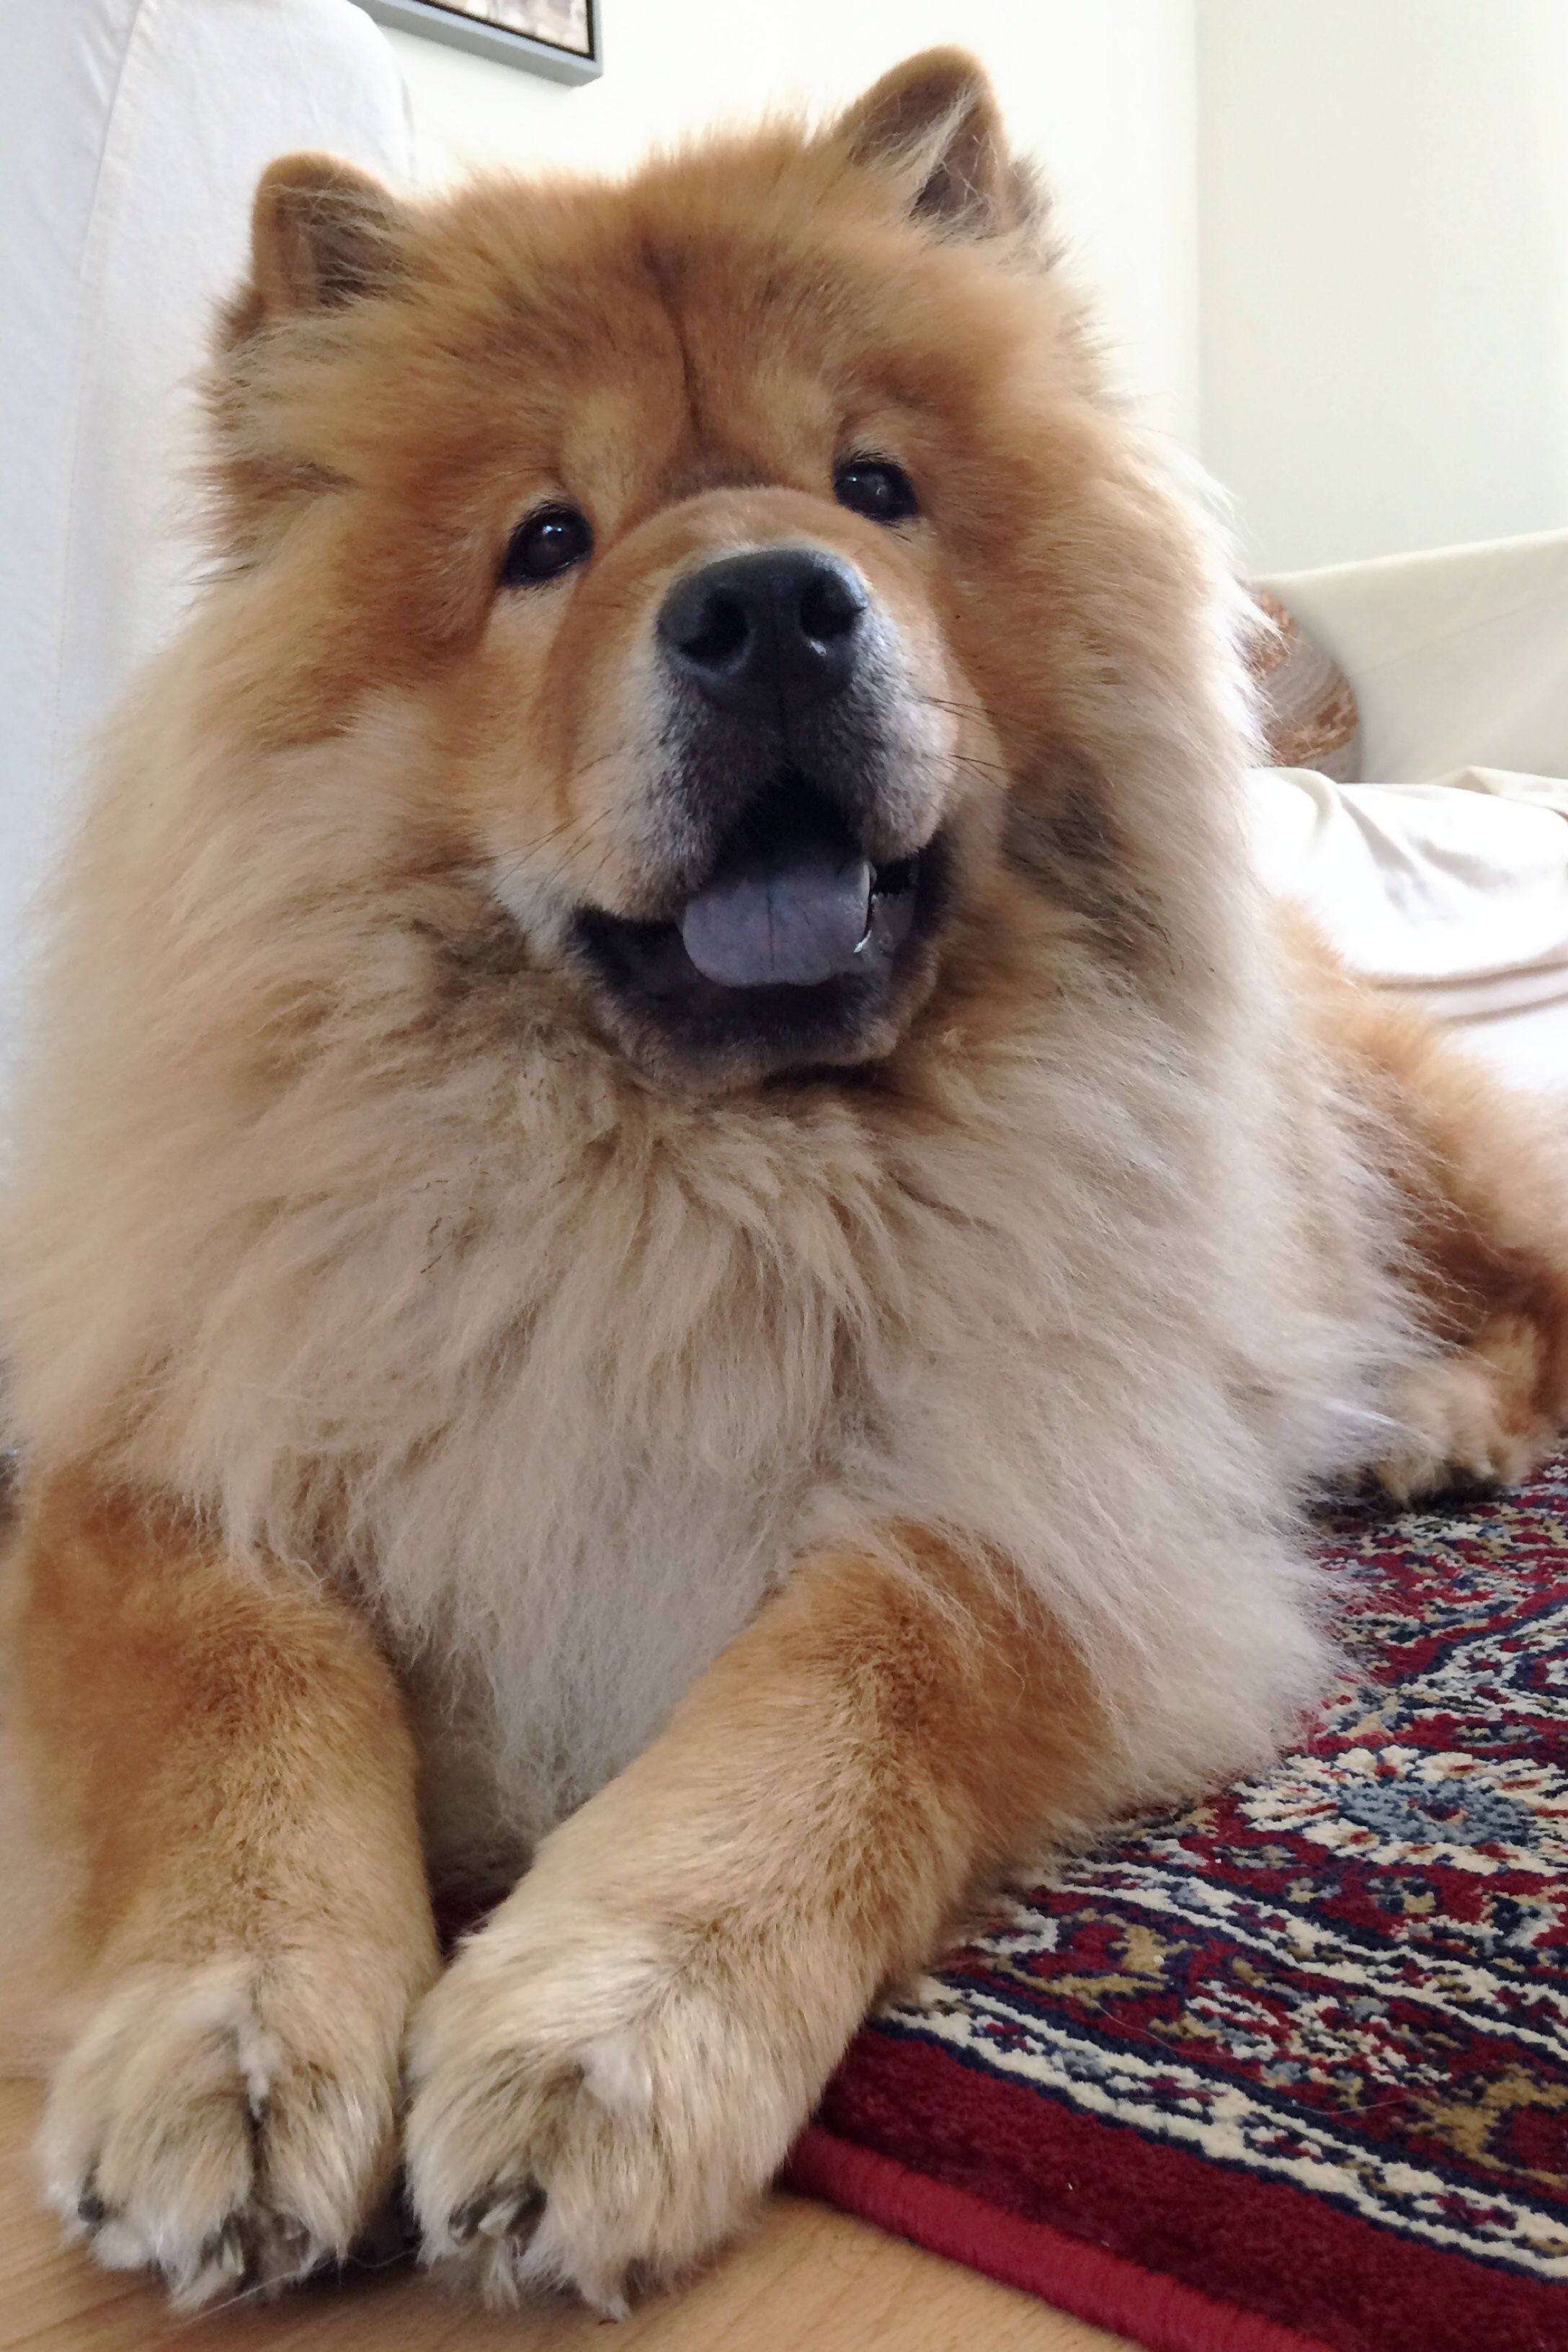 Chow Chow Dogs Breed The Lion Dog From China Adogbreeds Com